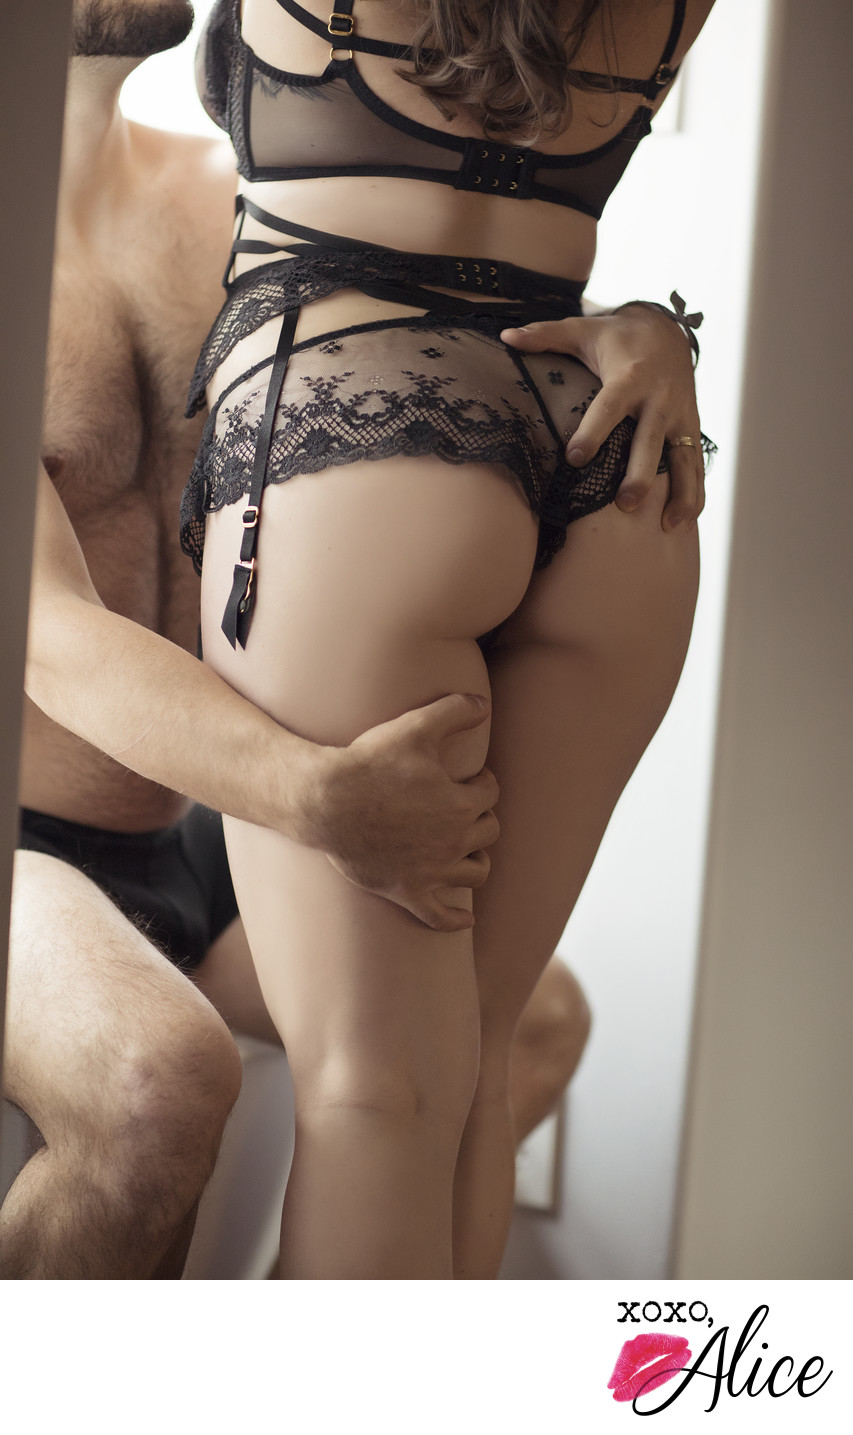 Sexy couples photography booty shots xoxo alice